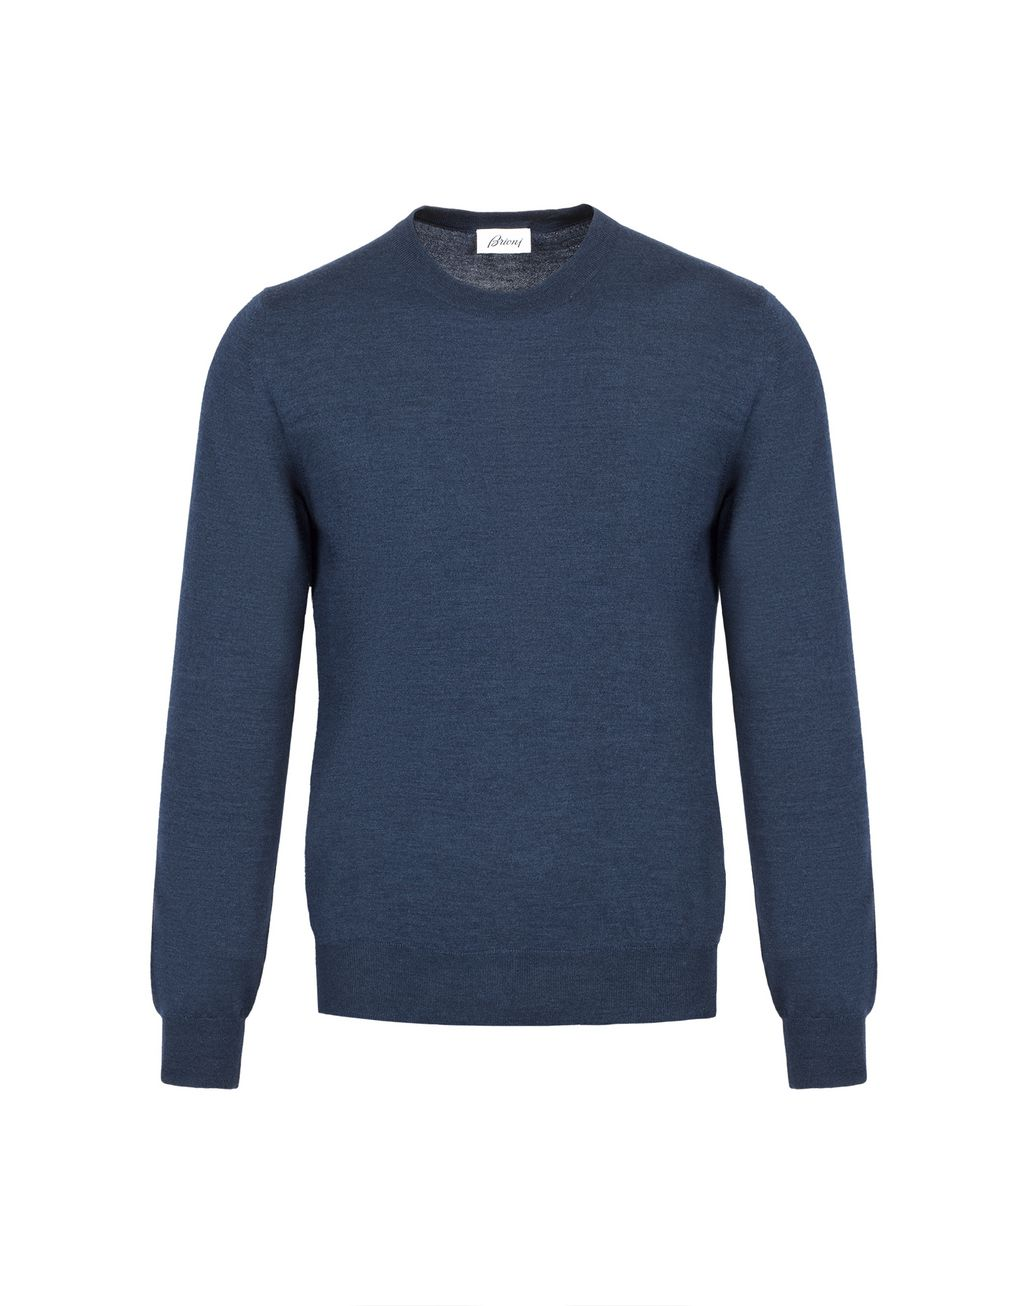 BRIONI Bluette Crew-Neck Sweater Knitwear Man f